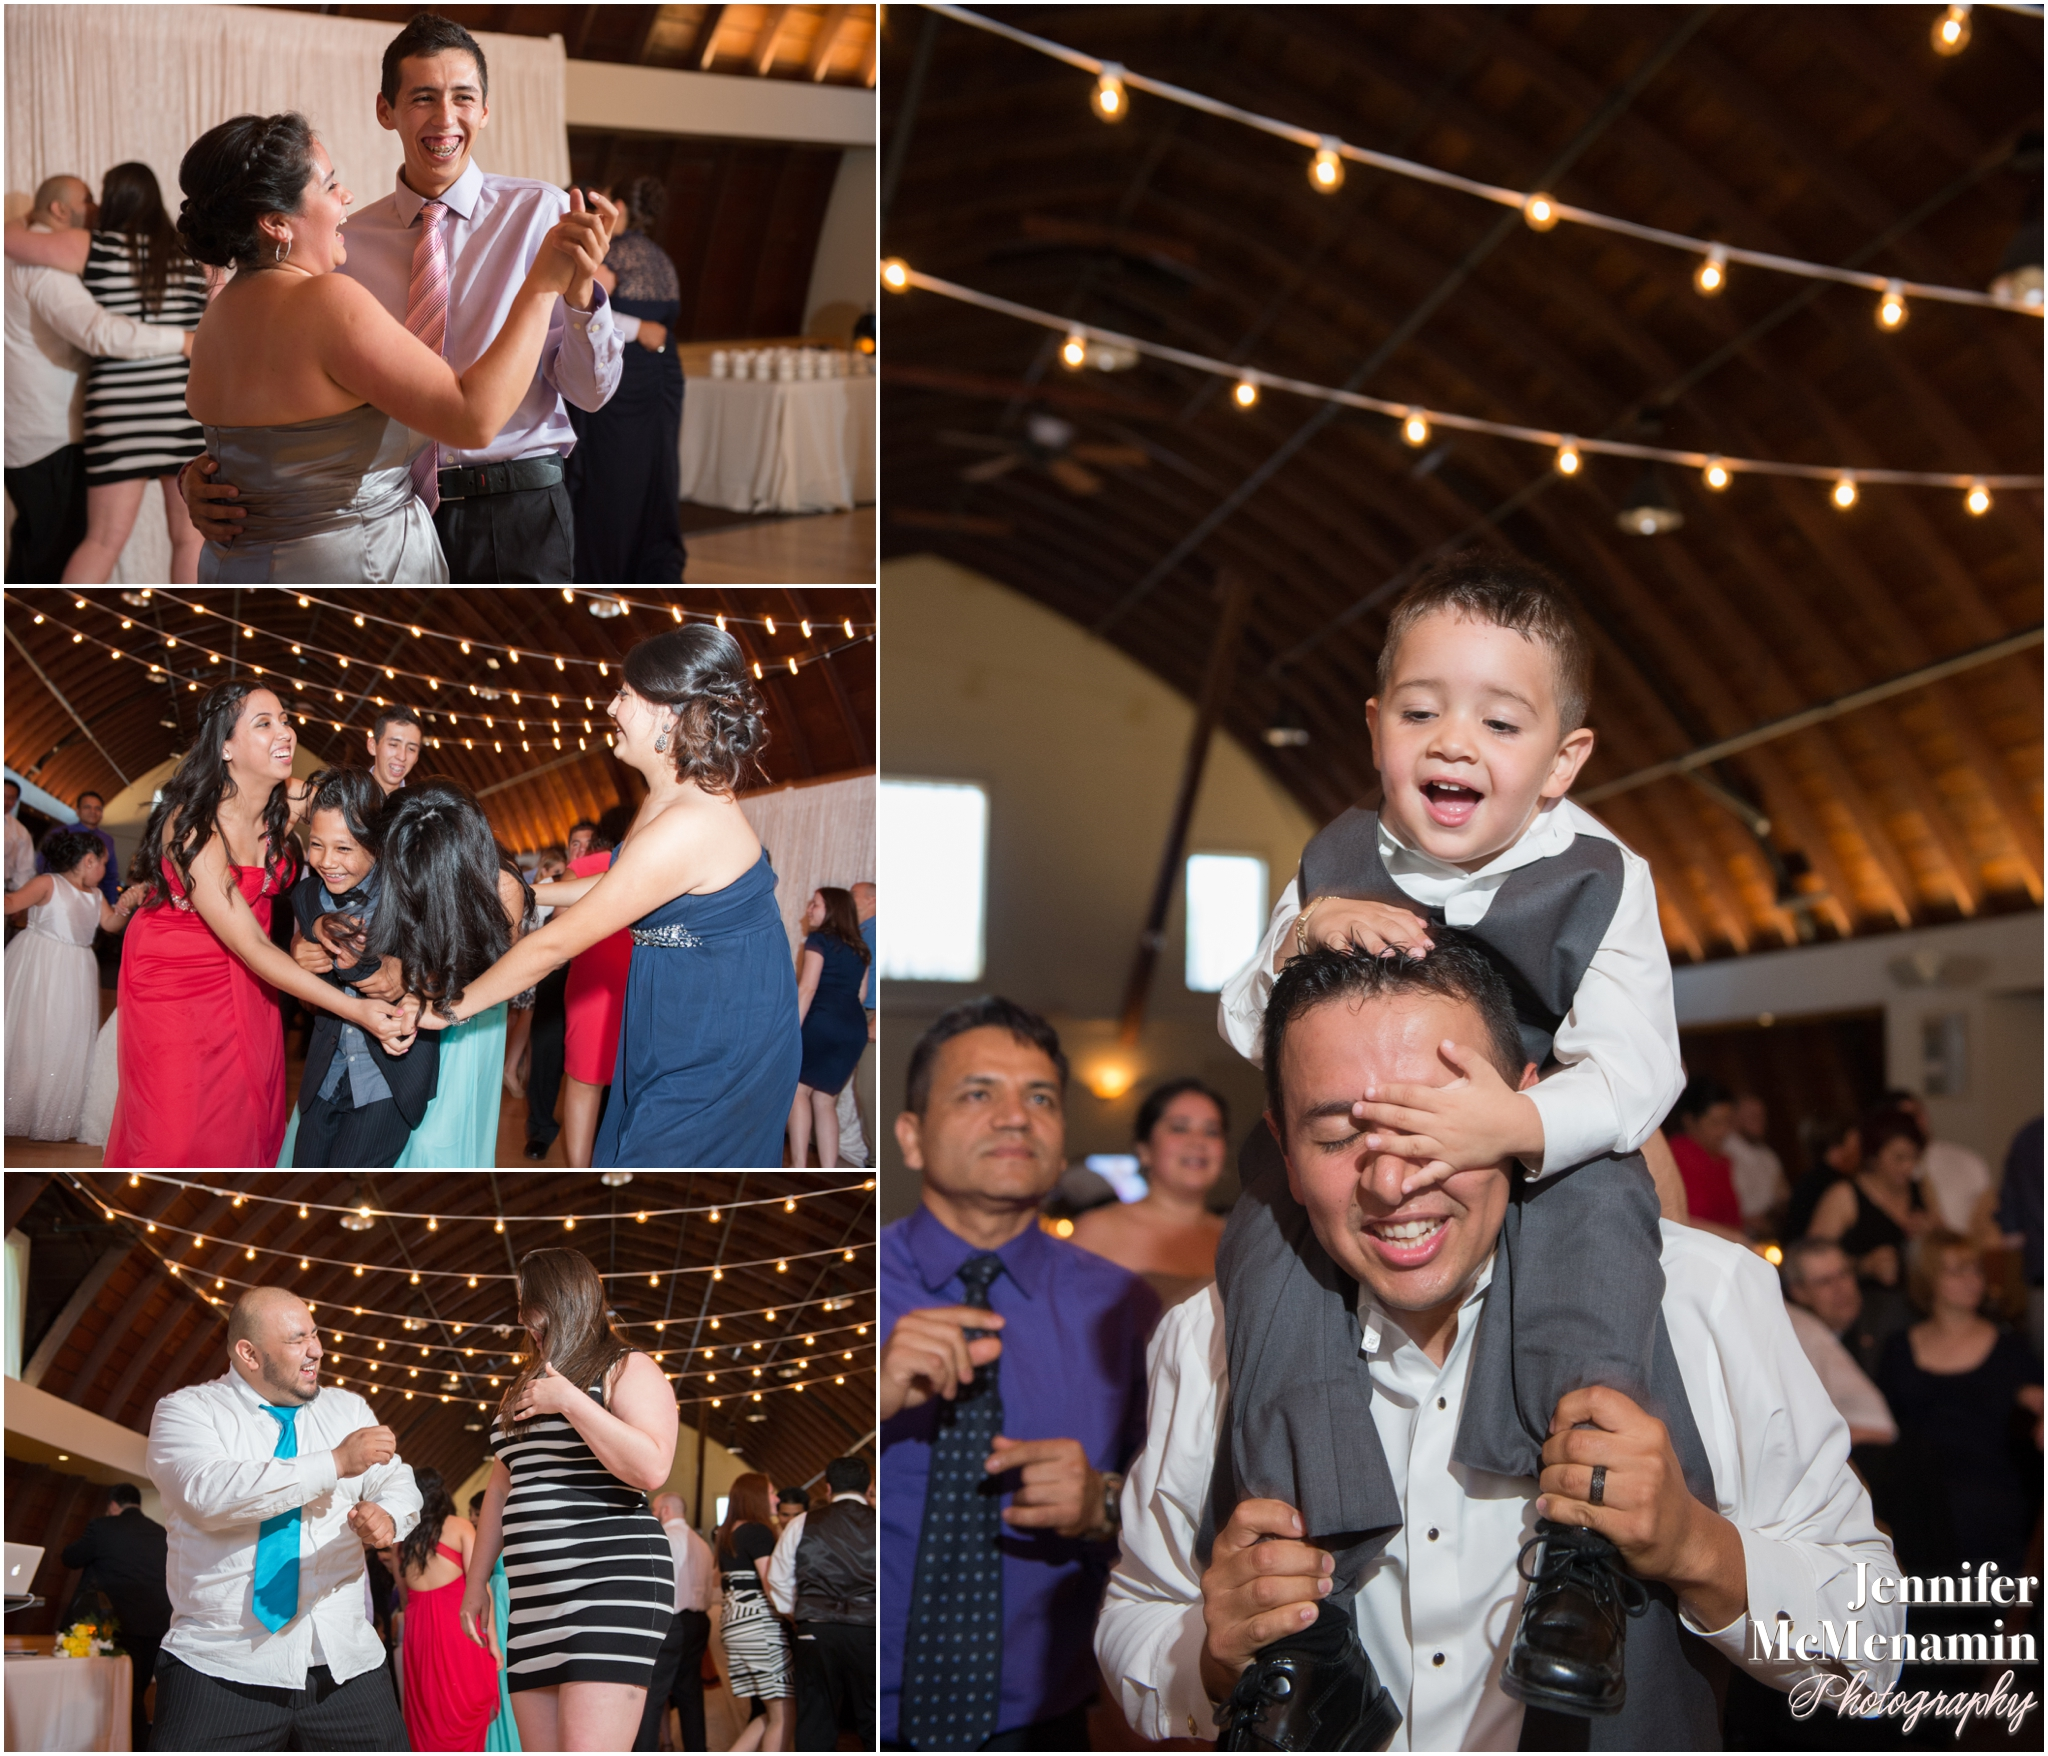 069_SchneiderMagallanes_03447-0710_JenniferMcMenaminPhotography_Baltimore-wedding-photography_St-Mary-of-the-Mills-Church_The-Other-Barn_Maryland-wedding-photography